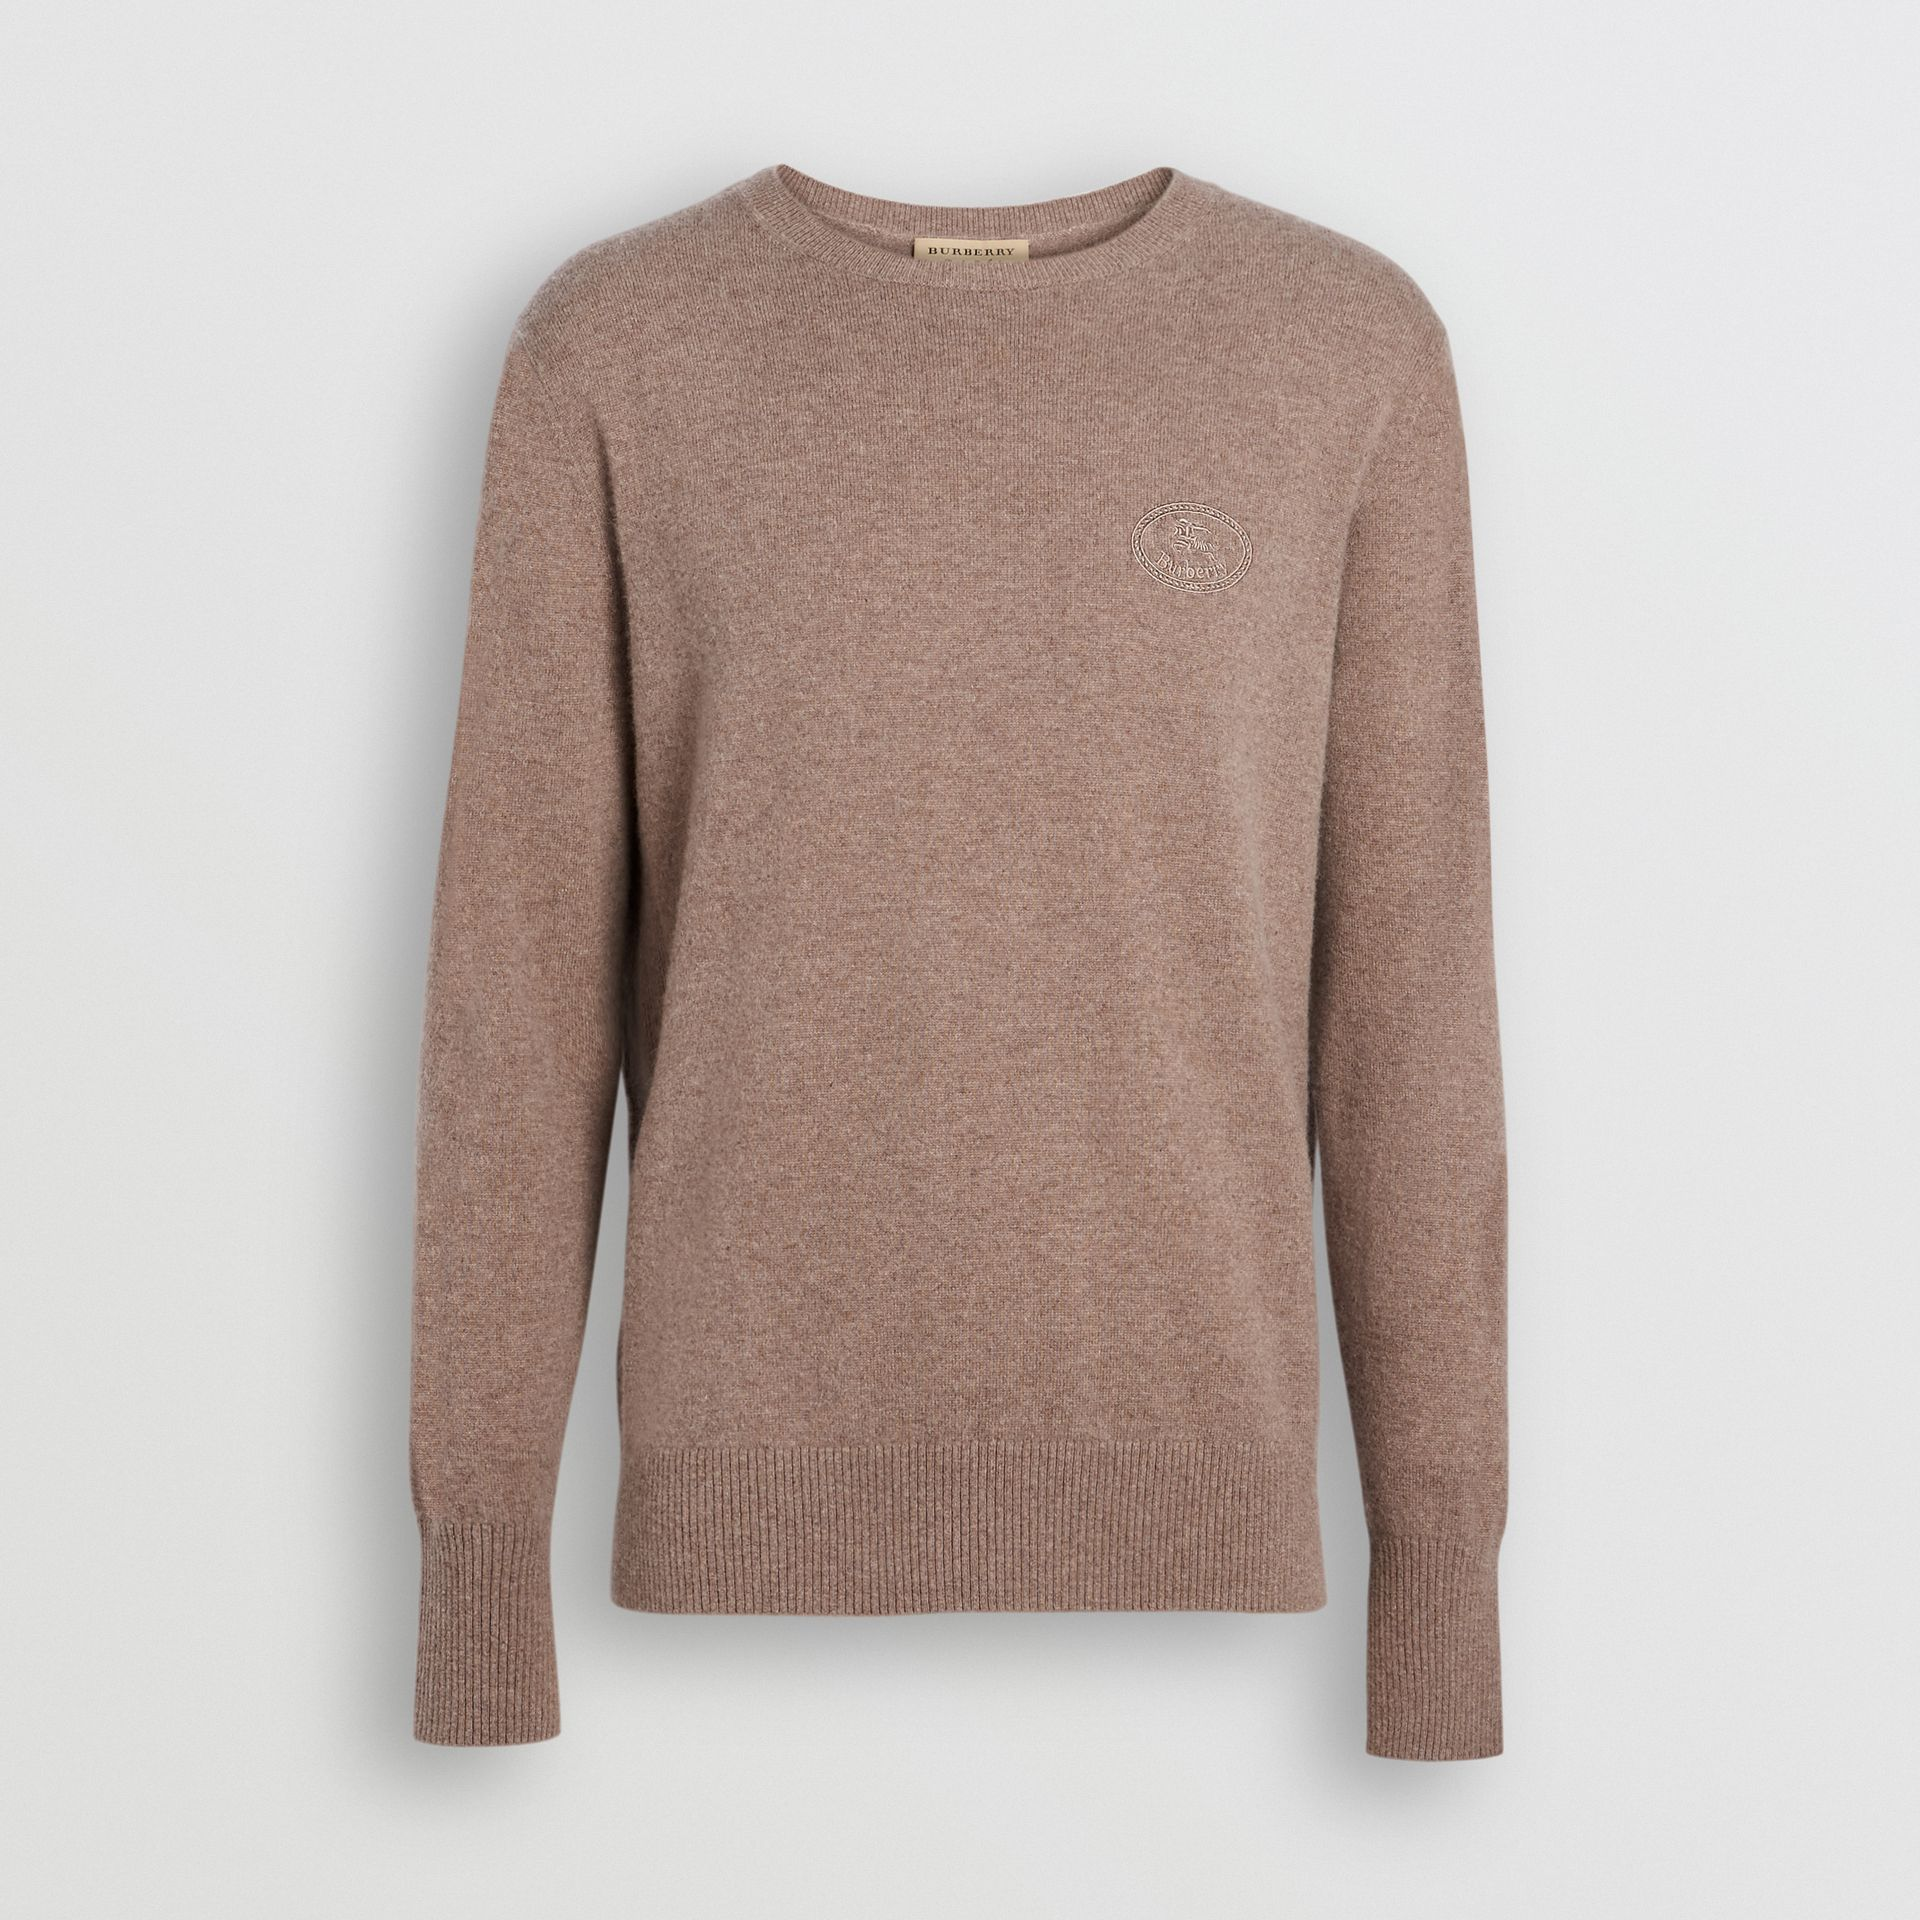 Embroidered Archive Logo Cashmere Sweater in Camel Melange - Men | Burberry Australia - gallery image 3